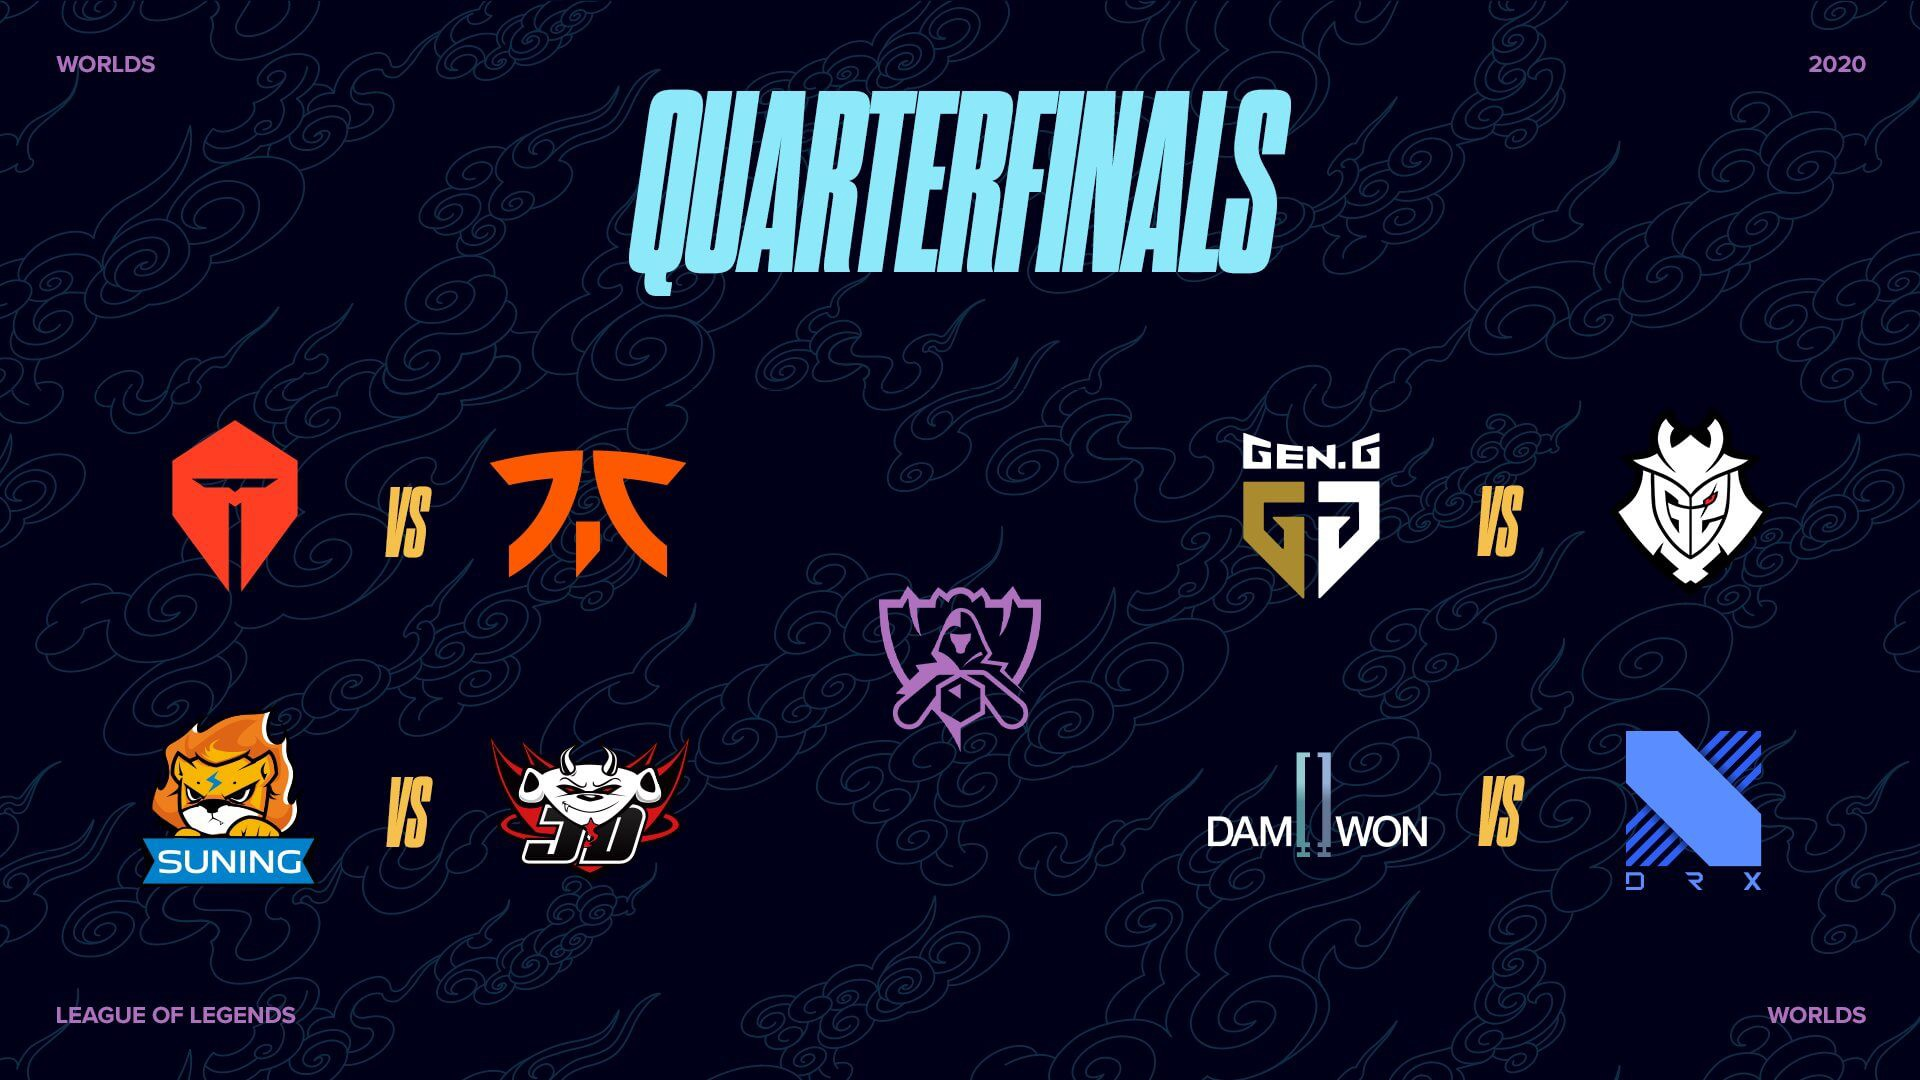 League of Legends Worlds 2020 quarterfinals for esports.